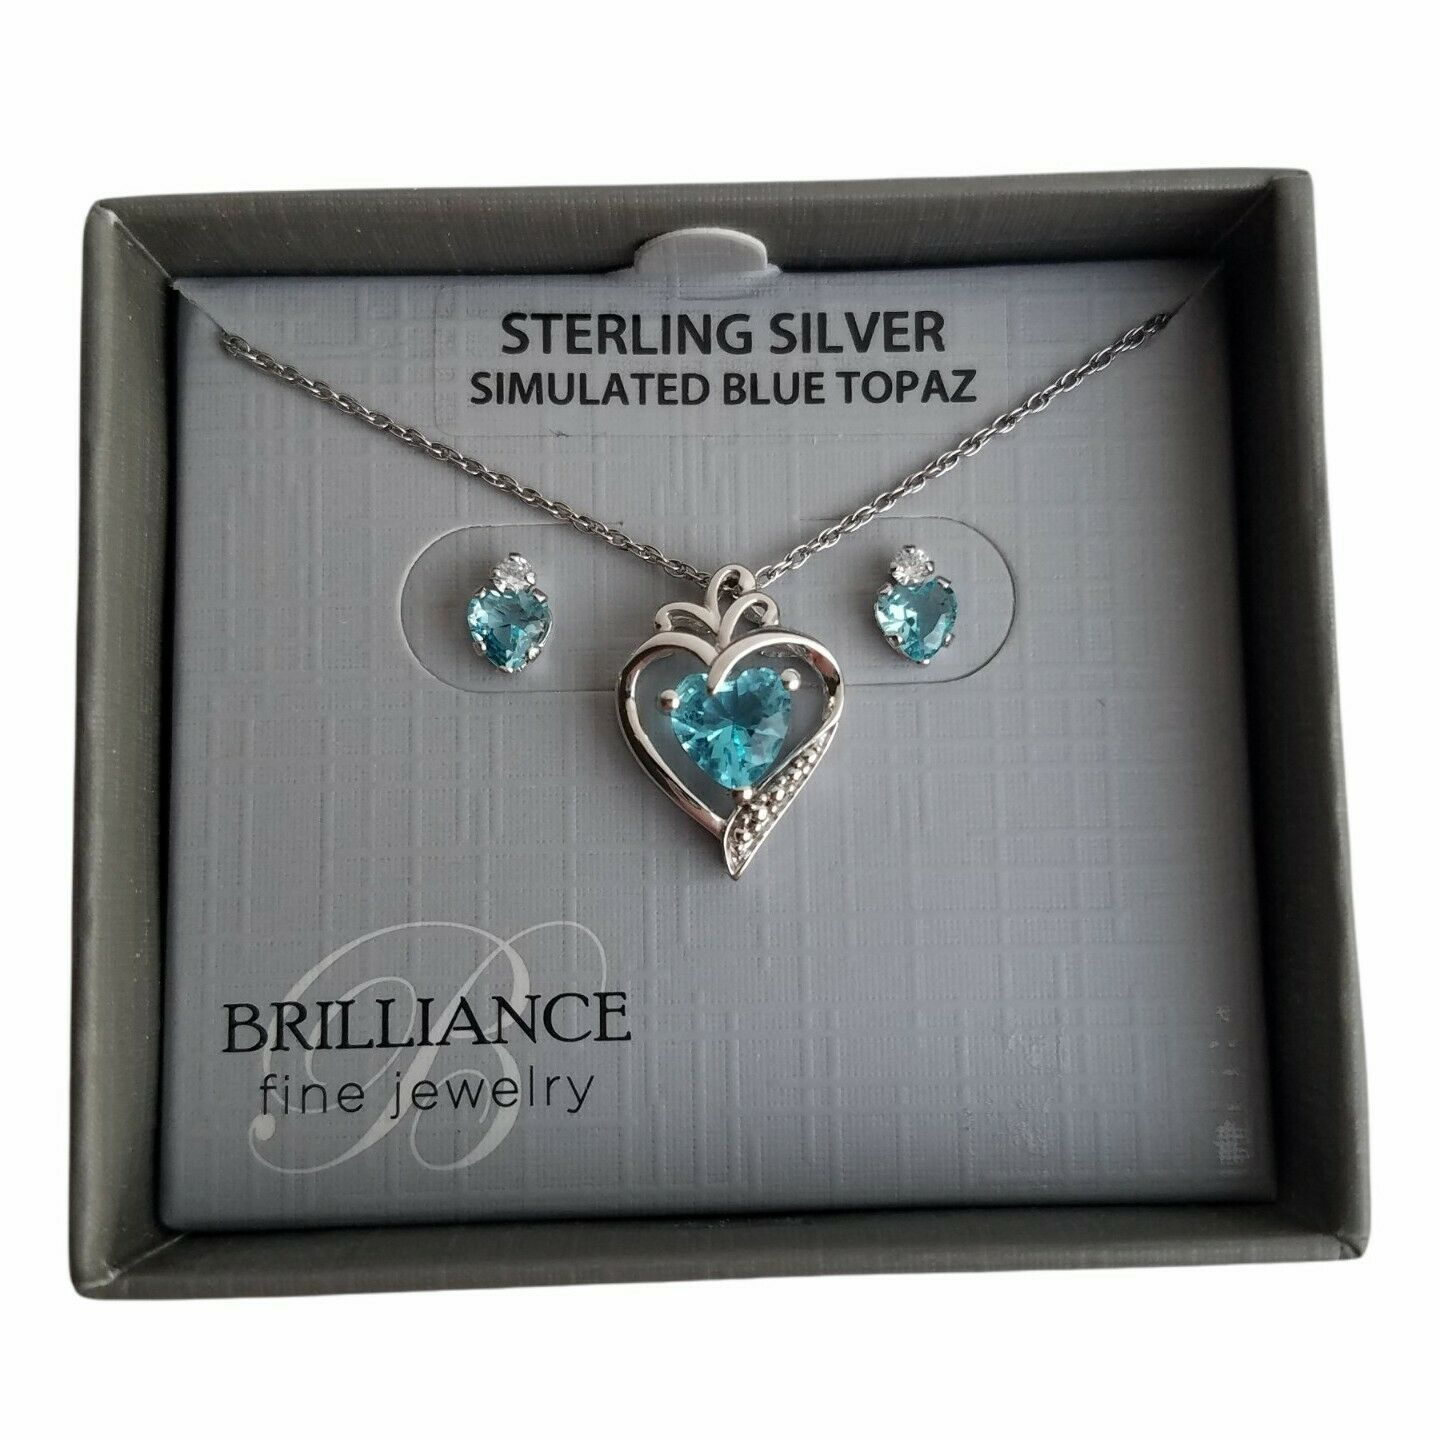 Brilliance Sterling Silver Simulated Topaz Necklace Earrings set Heart Blue